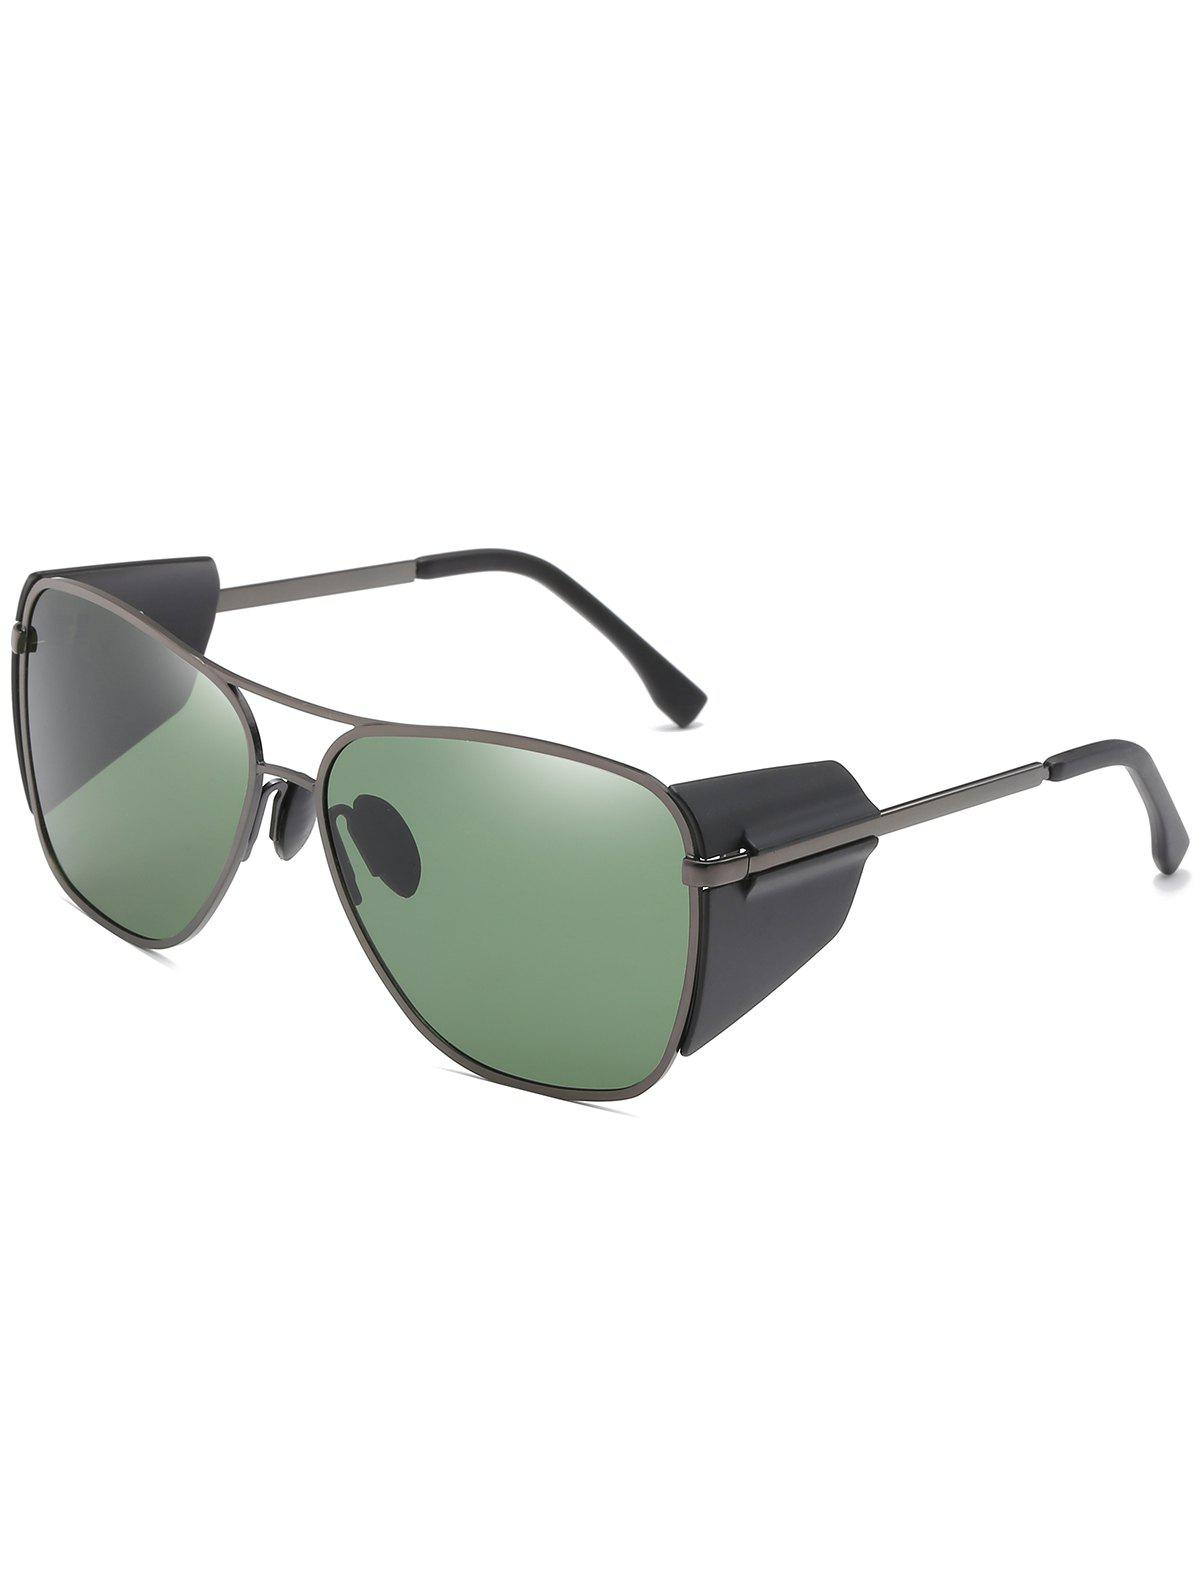 Anti Fatigue Top Bar Frog Mirror Sunglasses - SEA GREEN